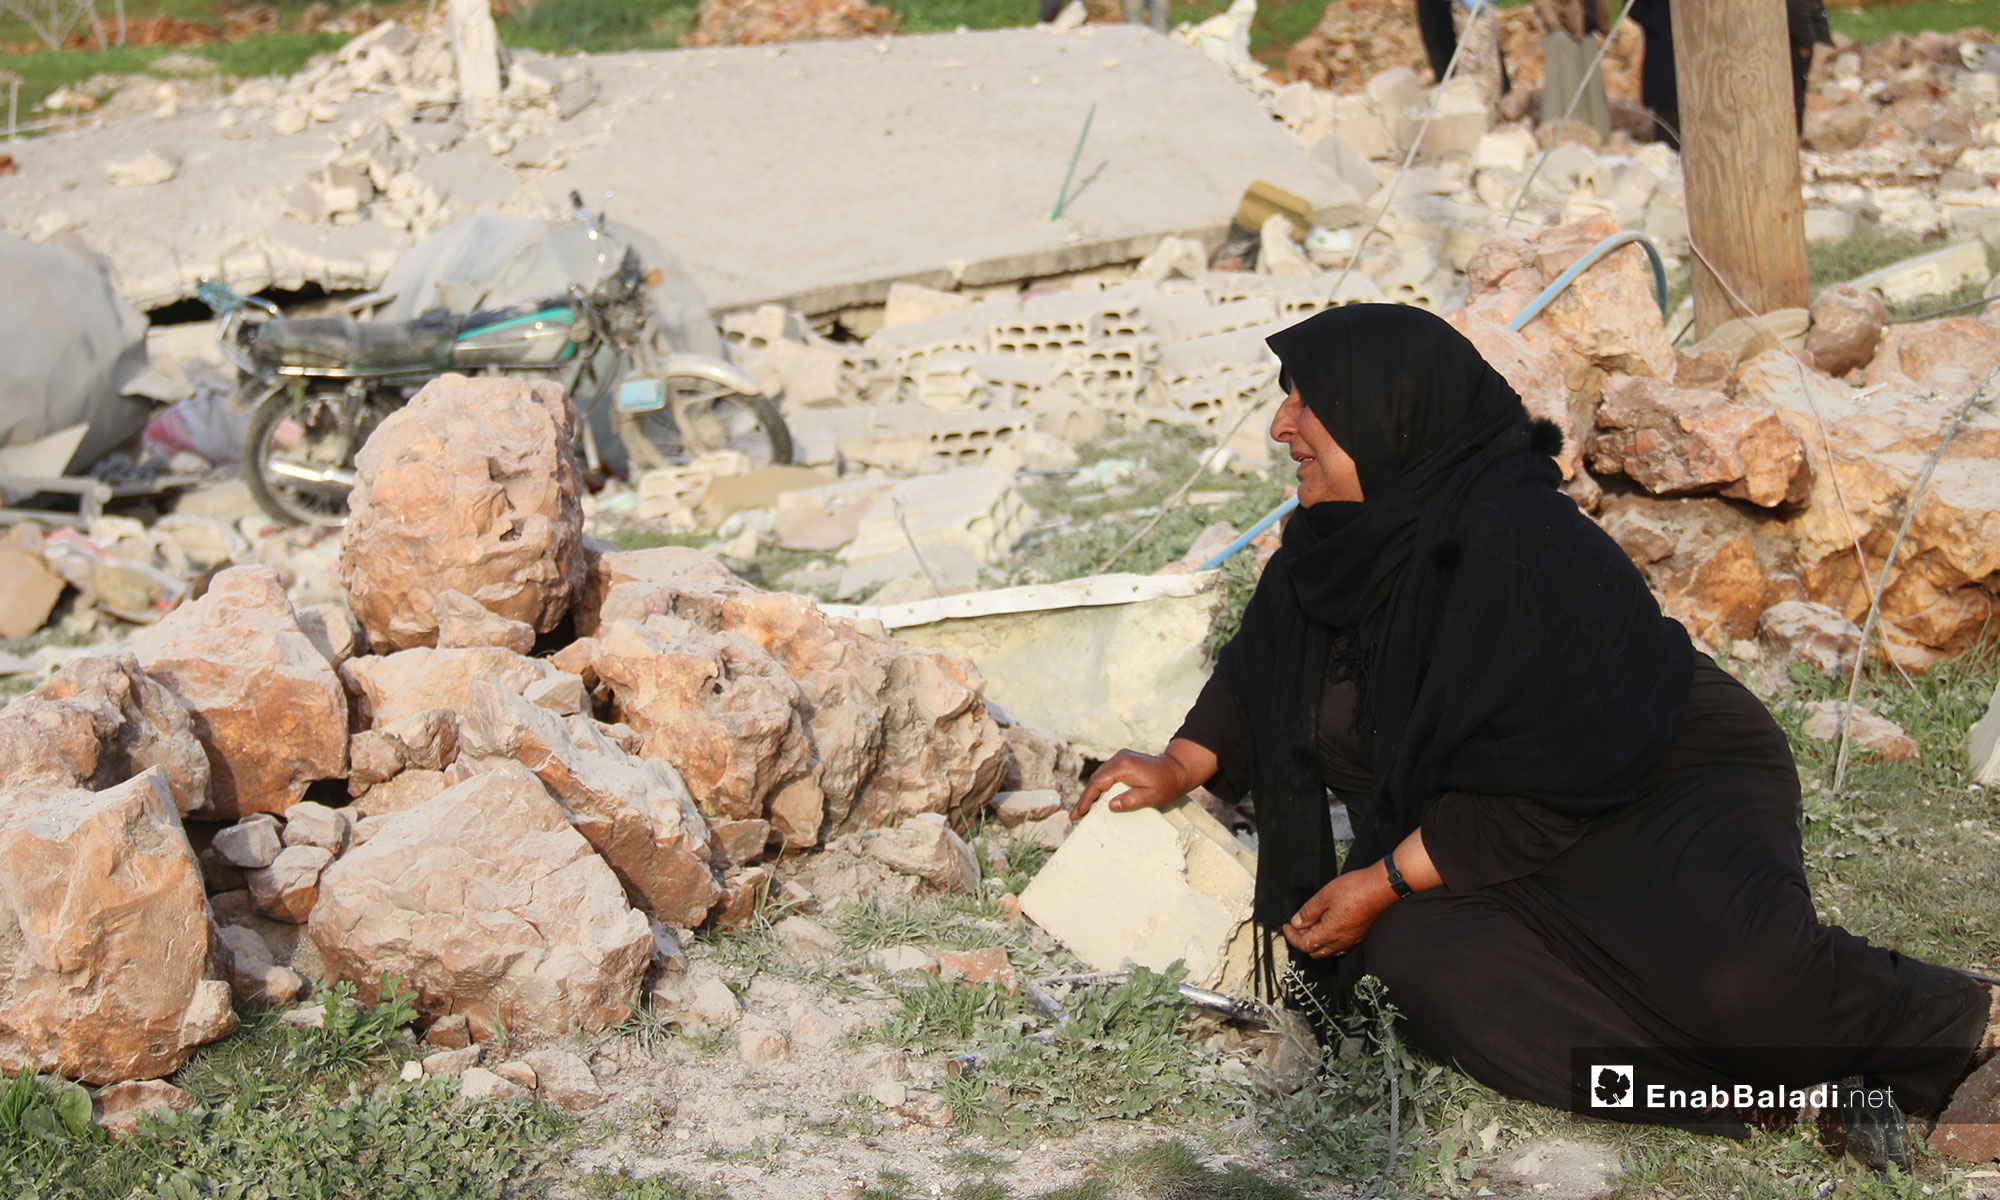 A woman sitting on the rubble of her house after it was shelled by the Russian aircraft in the town of Faqie, southern Idlib – March 21, 2019 (Enab Baladi)